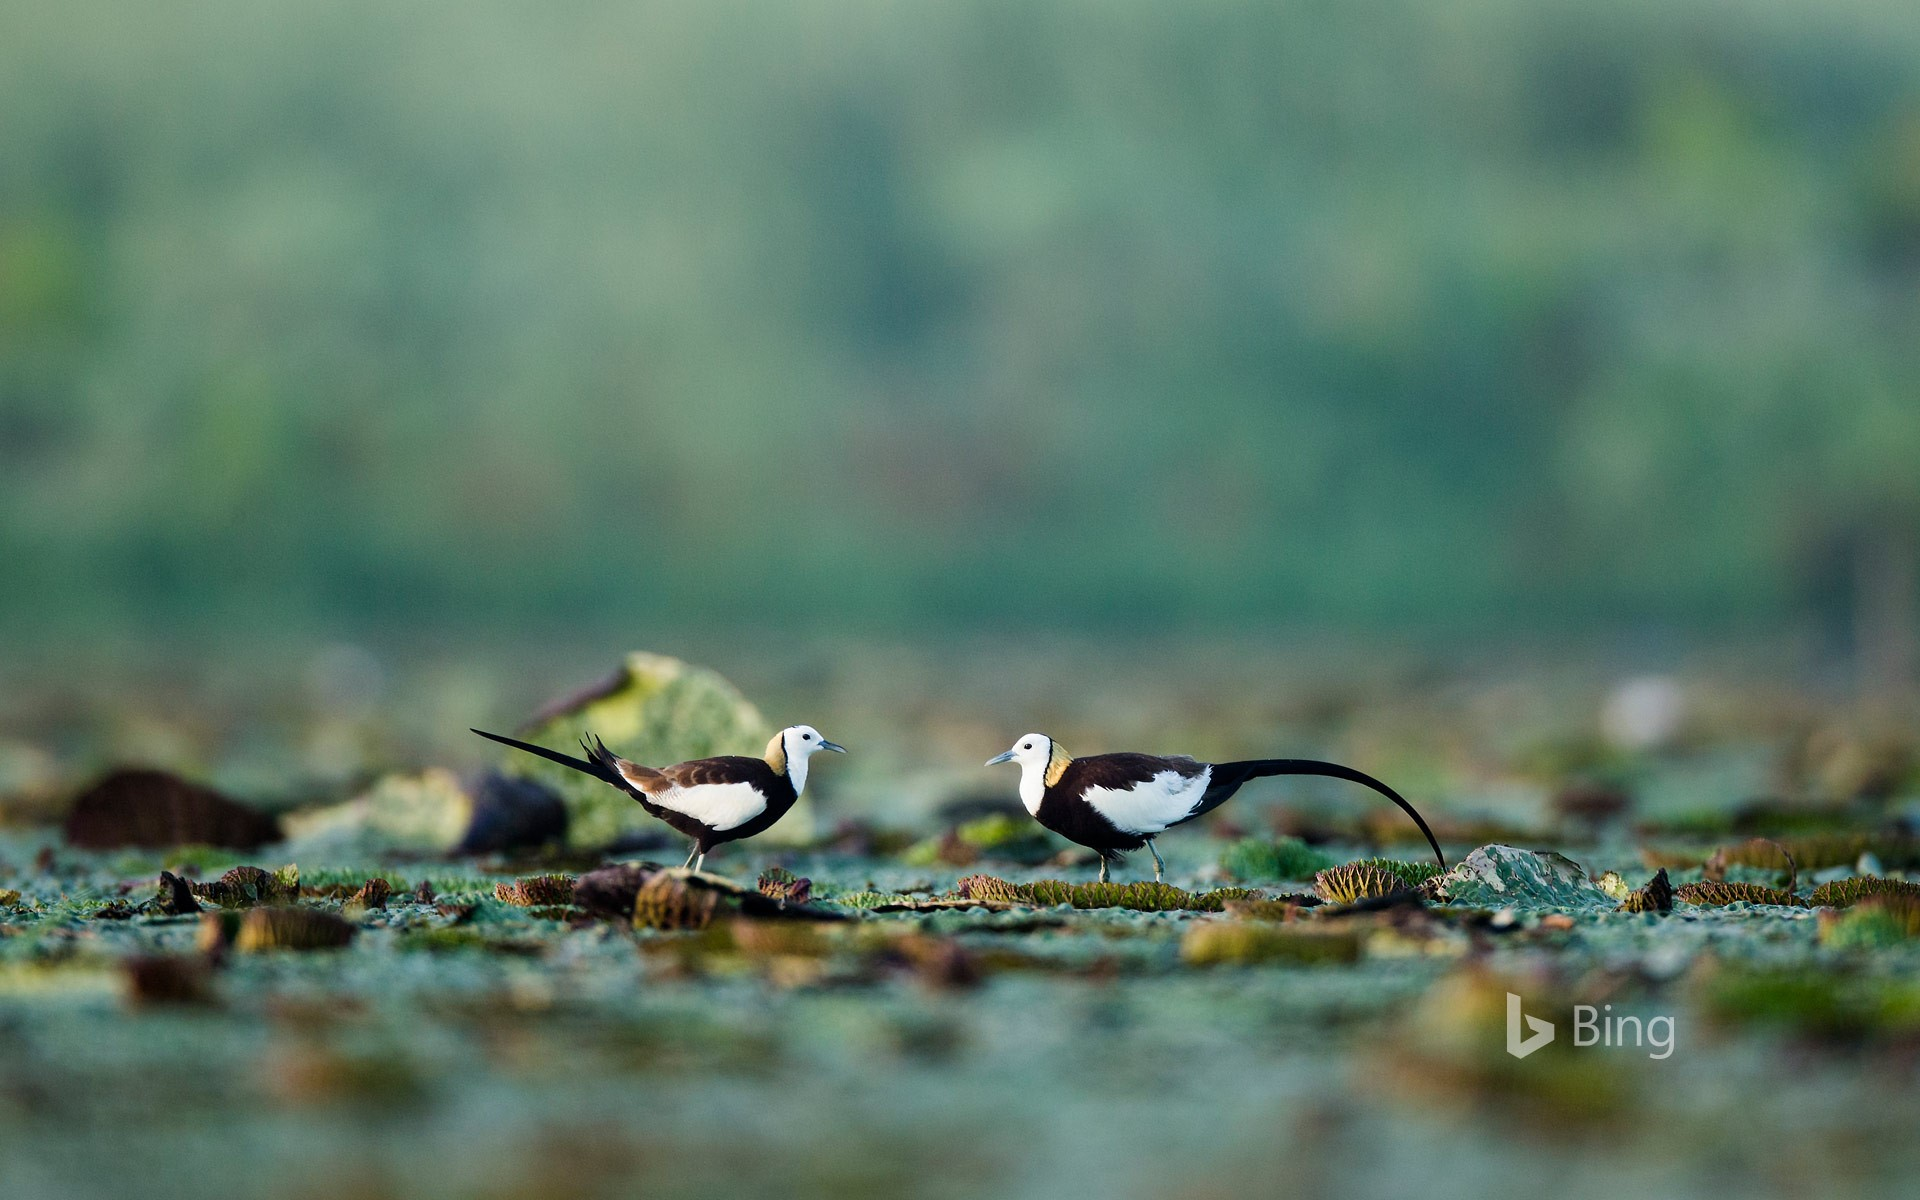 Pheasant-tailed jacanas, Chaisang District, China